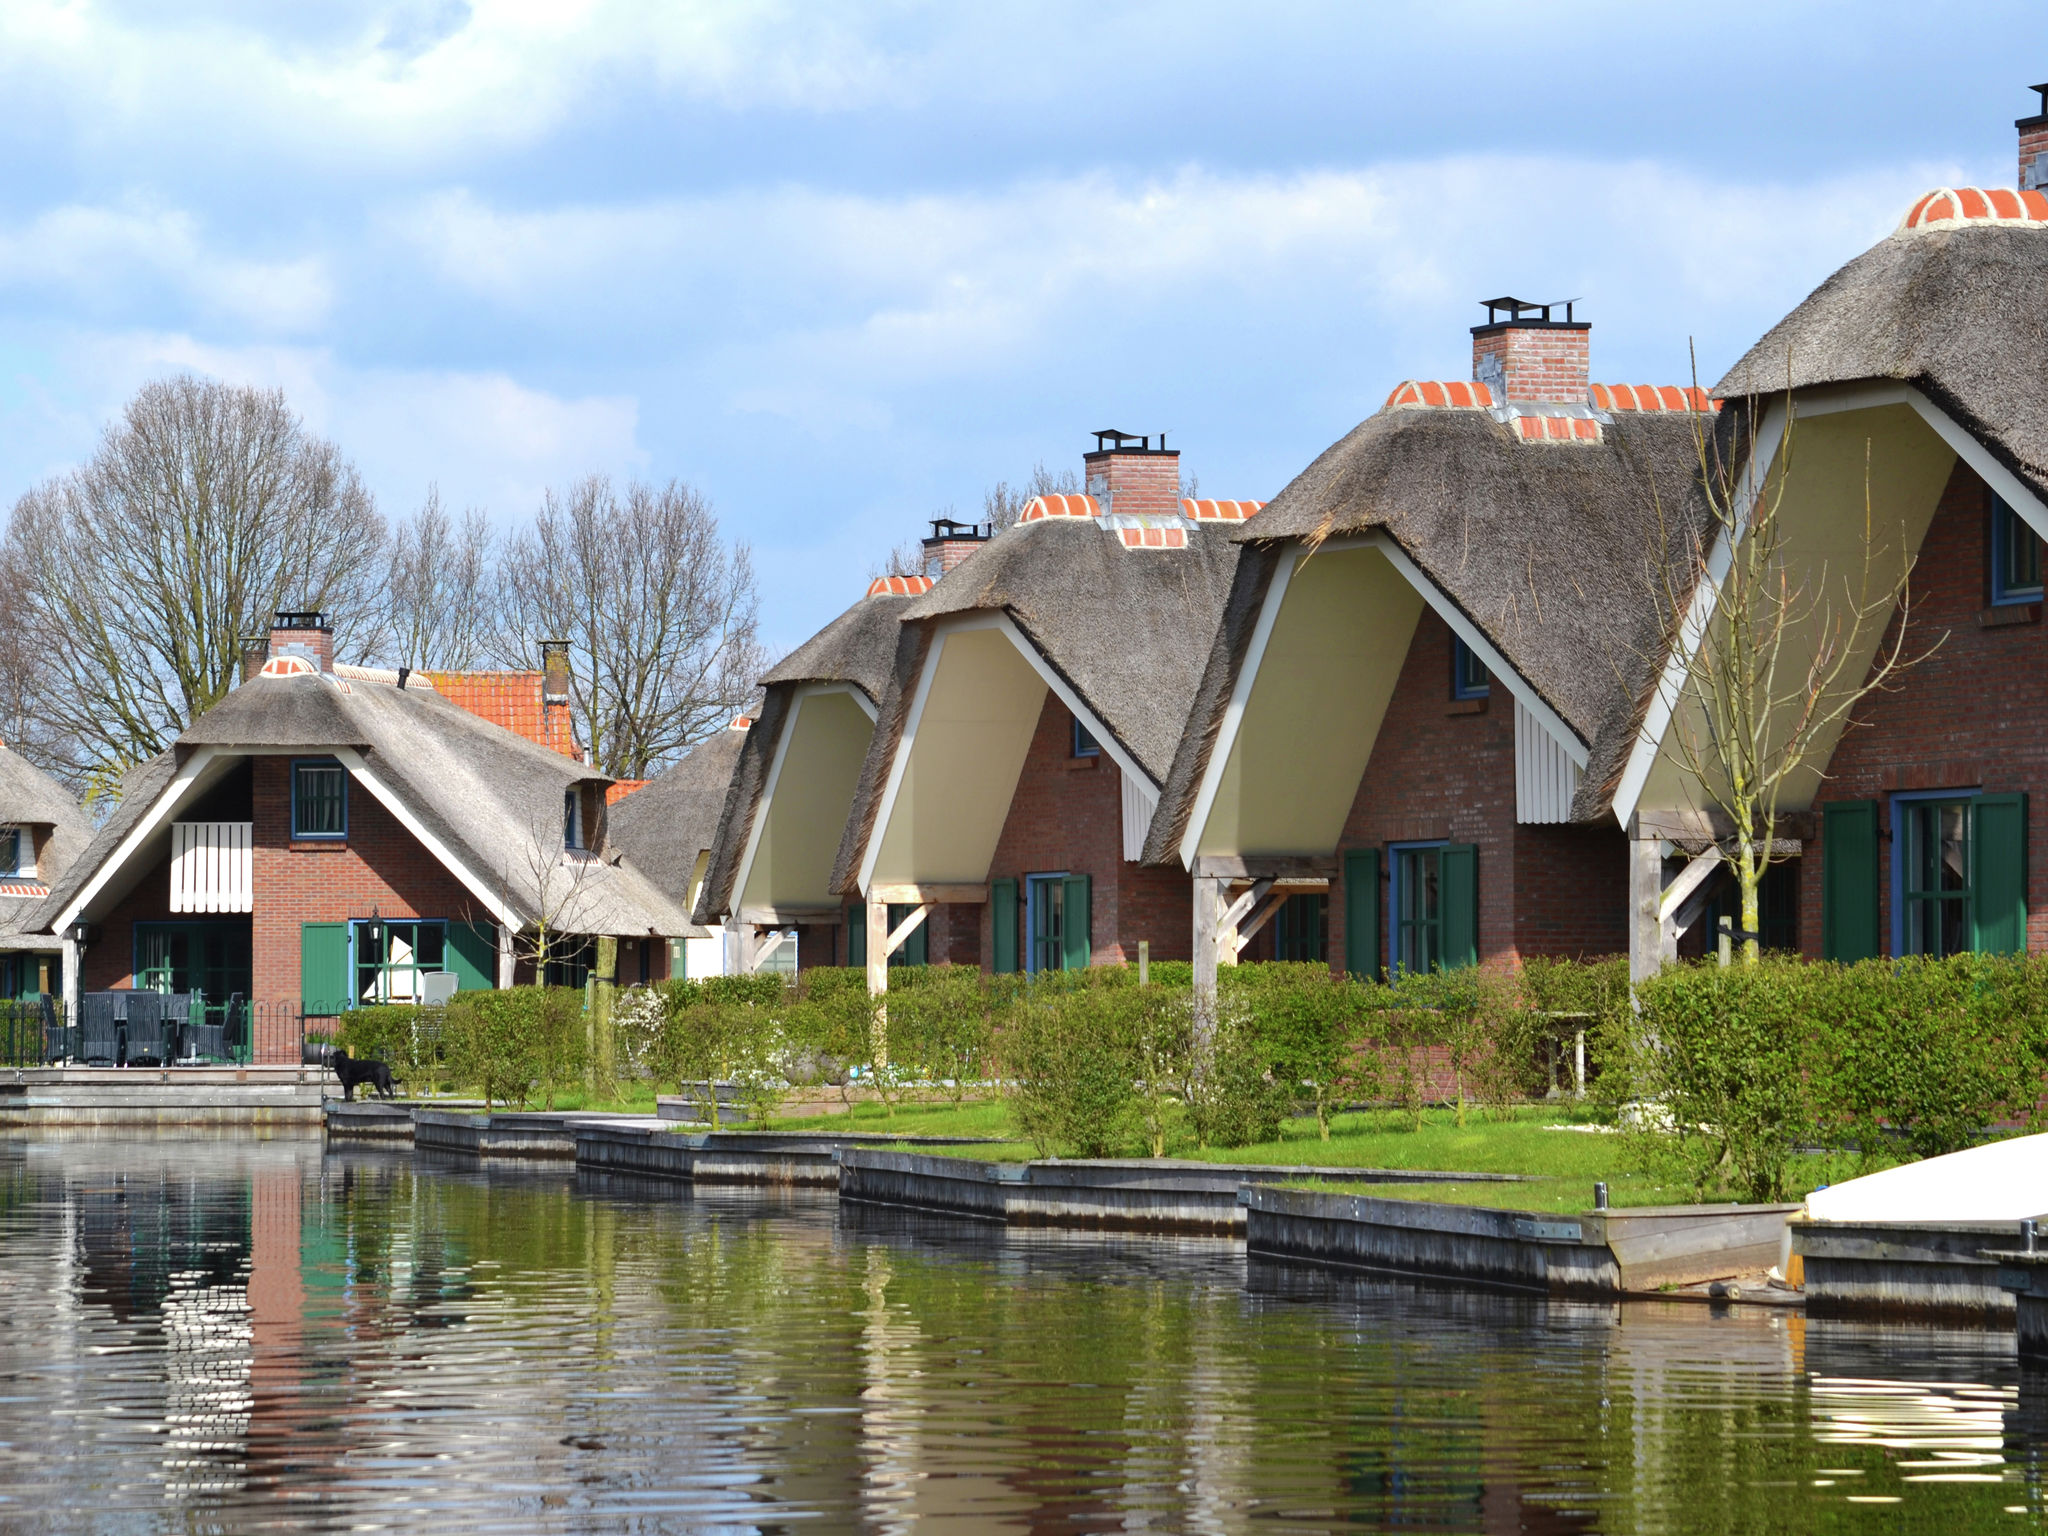 Holland | Overijssel | Holiday home Waterpark Belterwiede - Type Gaarde | all year | AreaSummer1KM